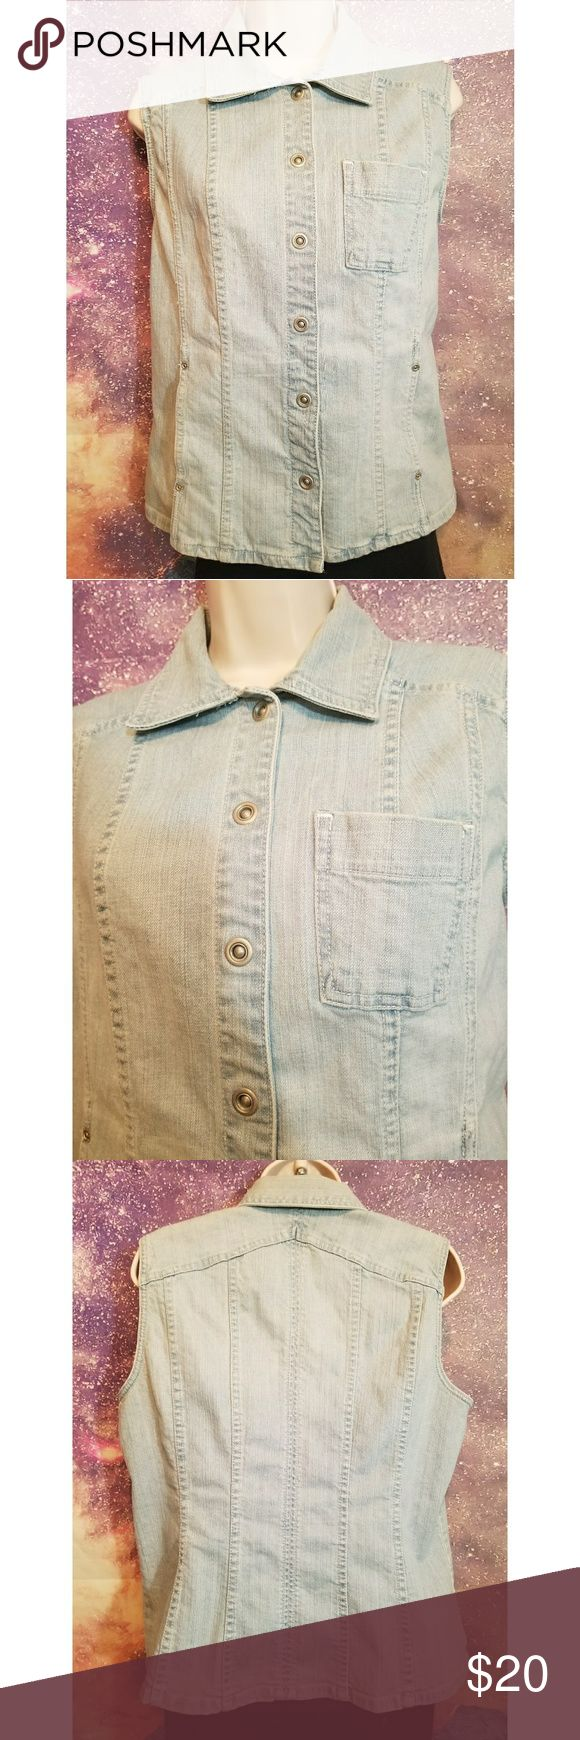 Chico's Platinum Sleeveless Denim Jacket Vest Chico's Platinum Sleeveless Denim Jacket Vest Size 1 Excellent Condition Chico's Jackets & Coats Jean Jackets